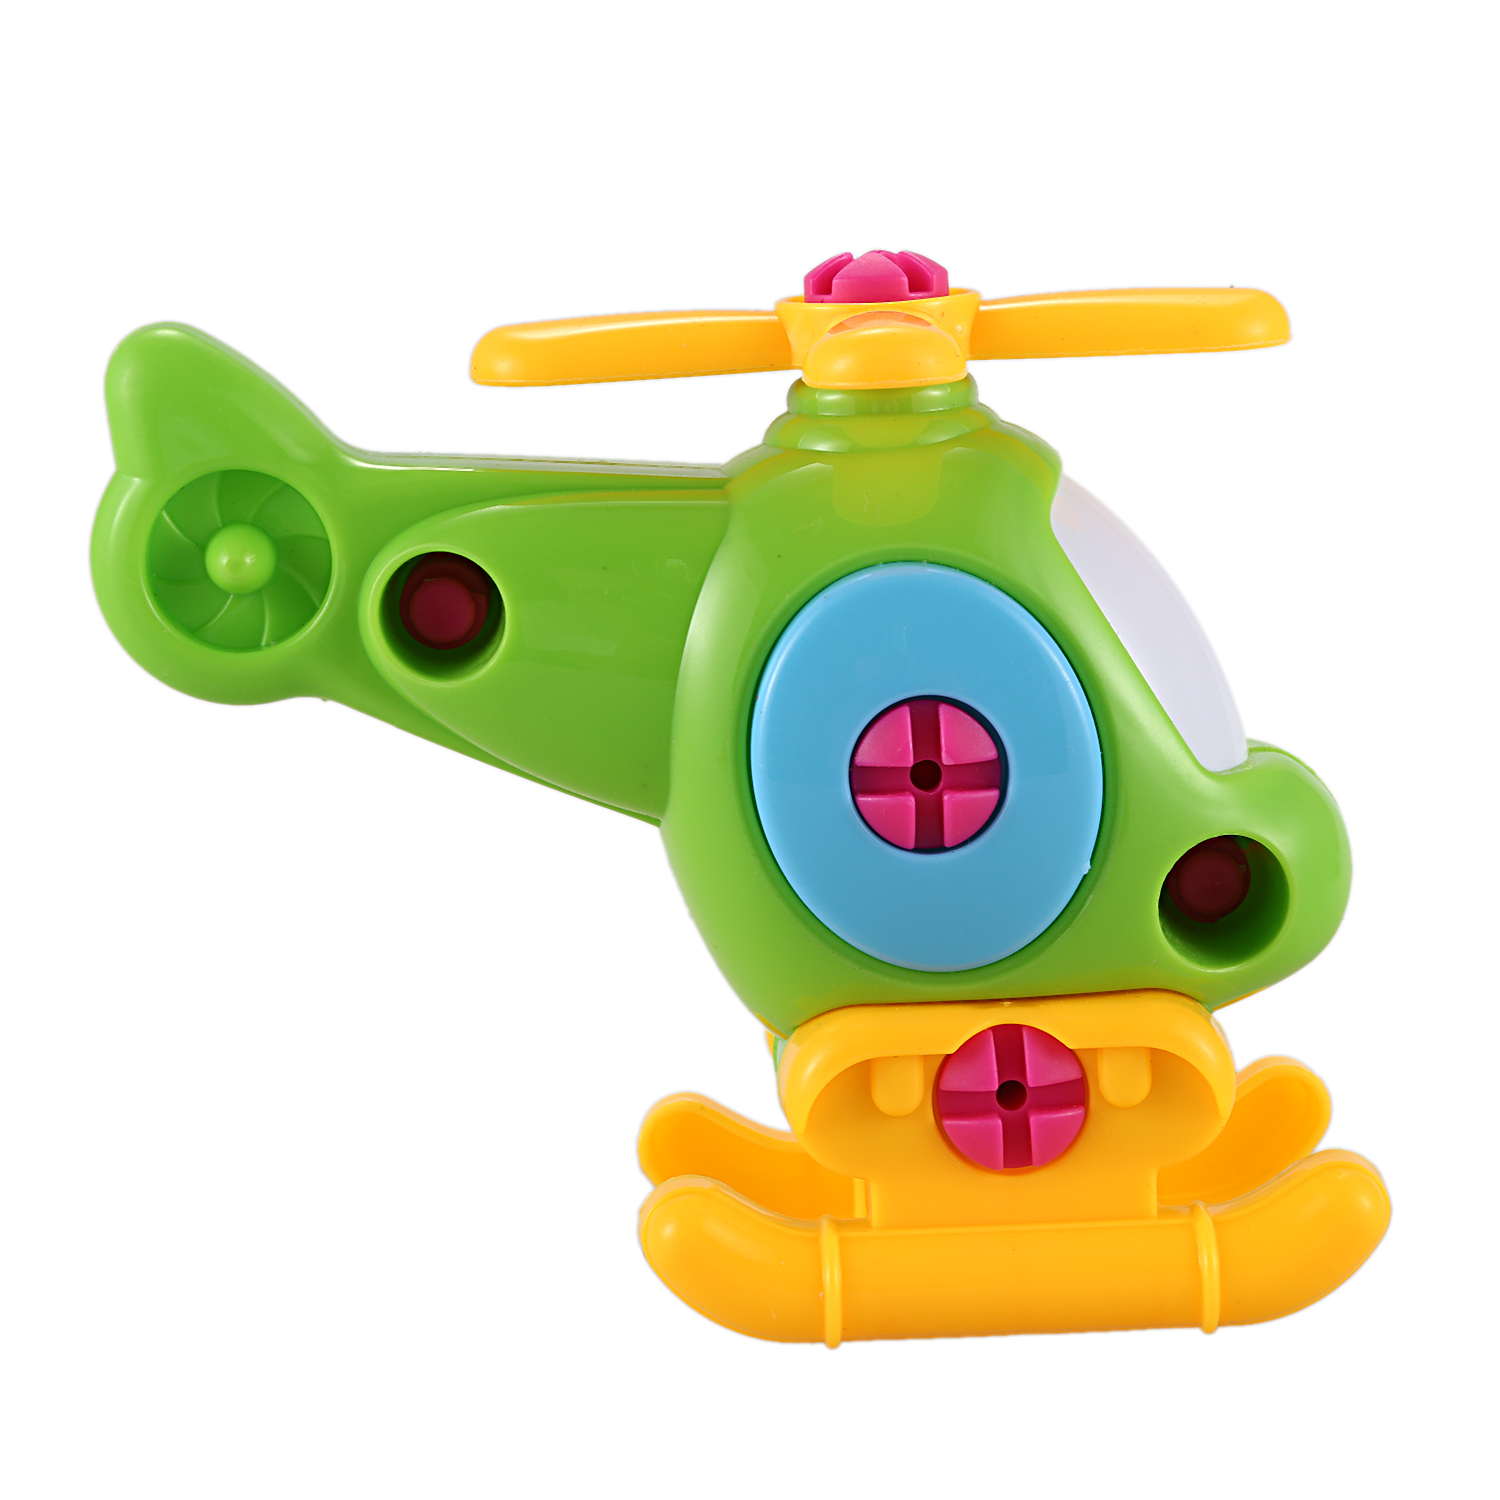 Construction Toys Take Apart Toys Assembly Helicopter Take-apart Puzzle Toys for Children 3 Year Old Boys (Helicopter)